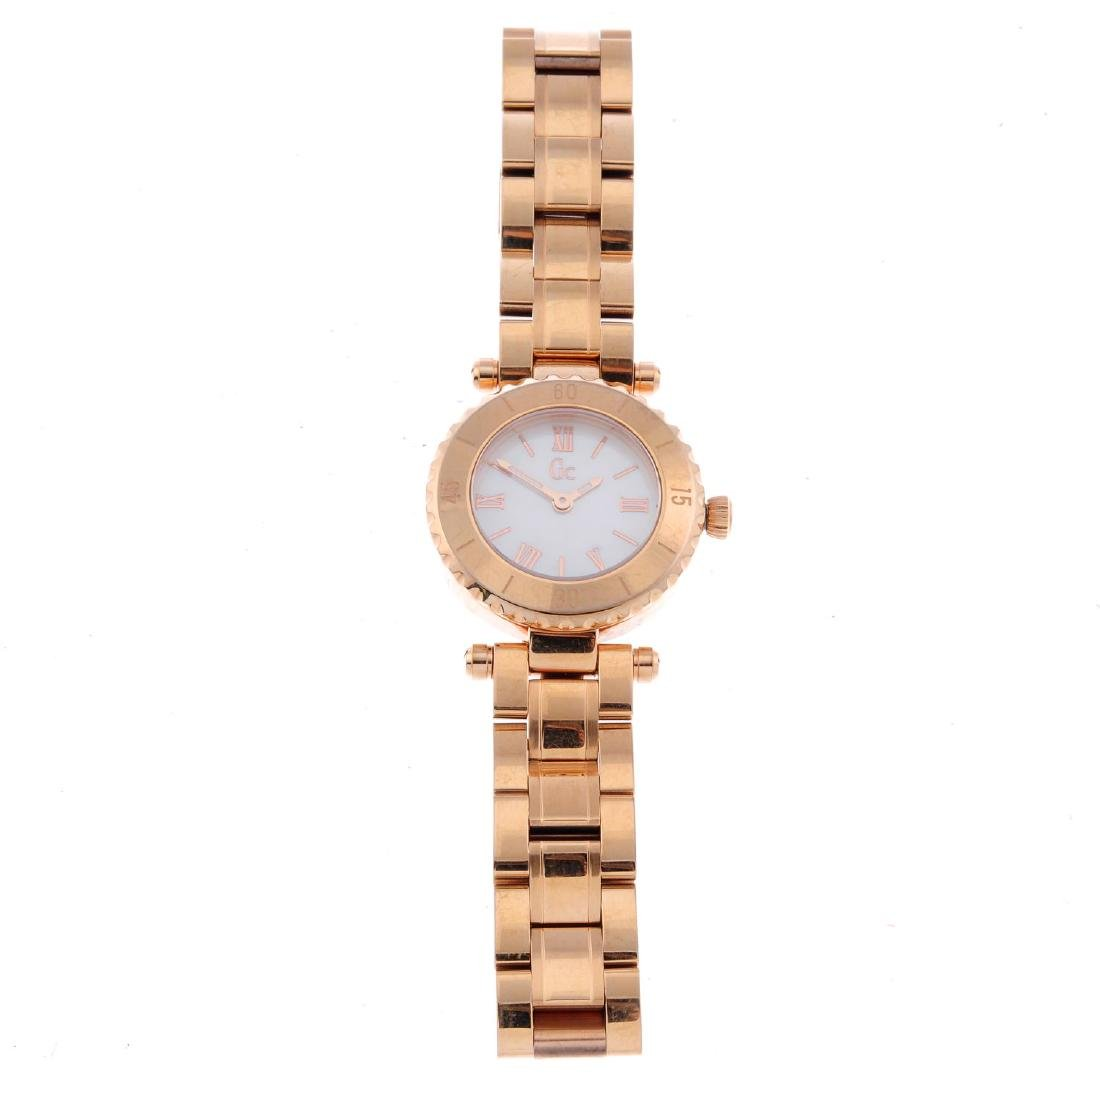 GC - a lady's bracelet watch. Rose gold plated case